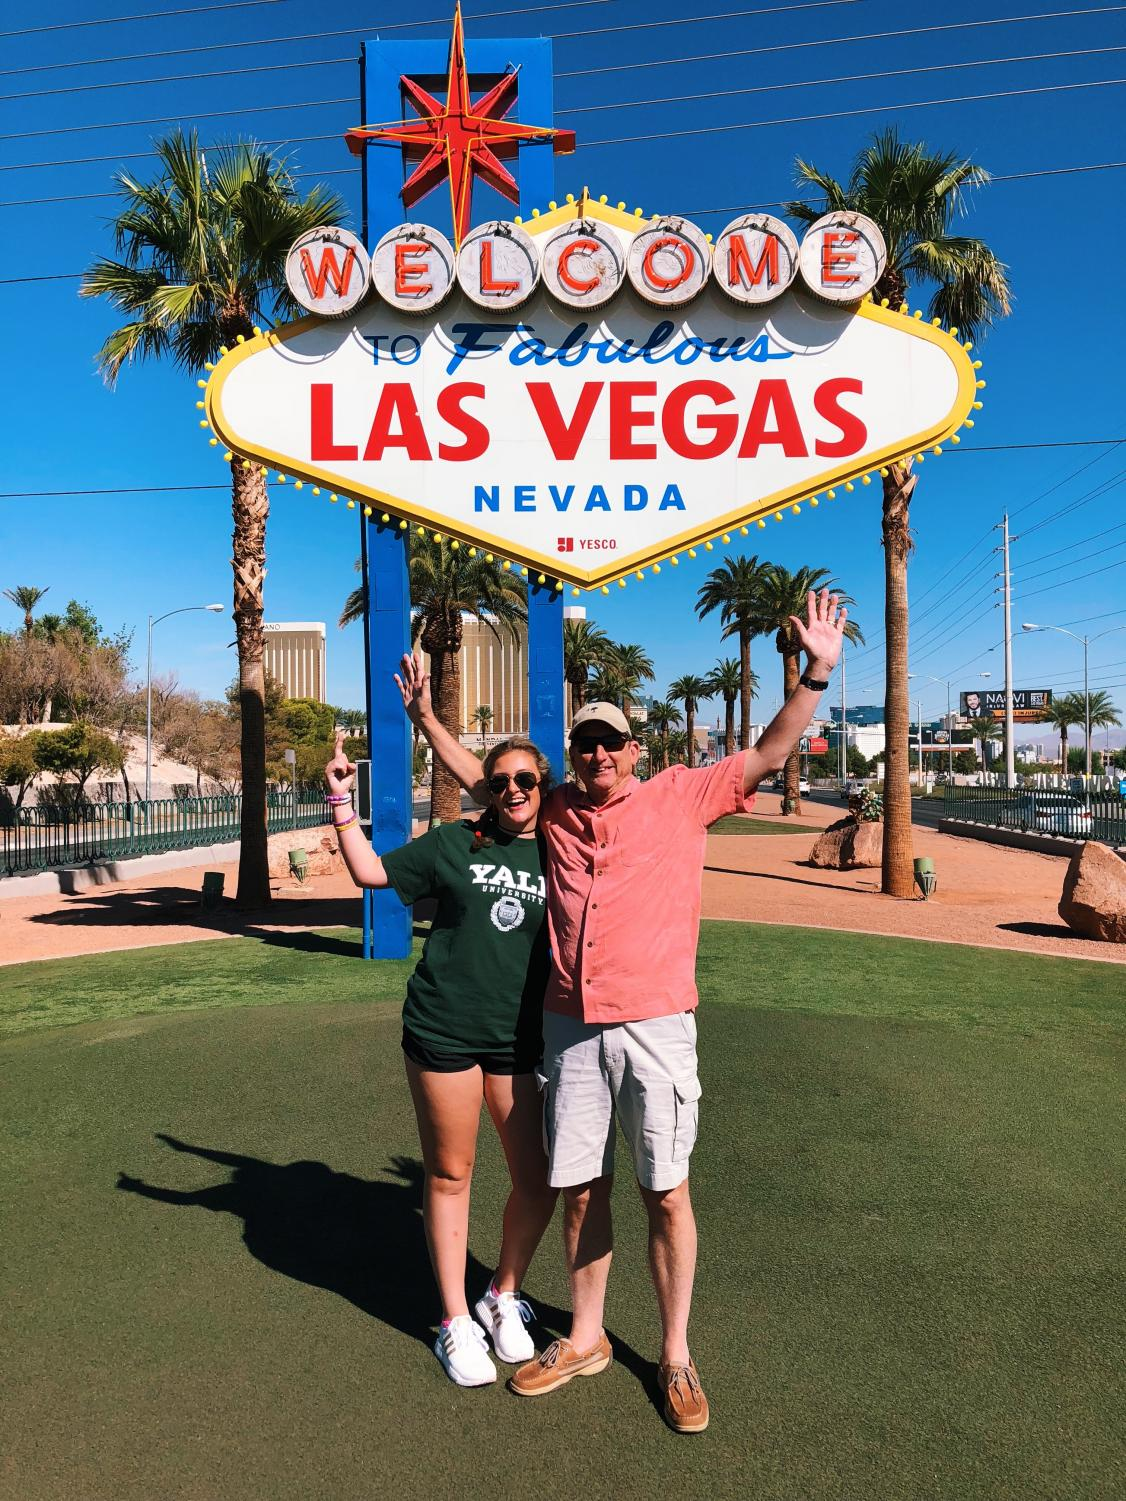 Picture+perfect.+While+in+Las+Vegas%2C+its+a+must+to+visit+the+Old+Las+Vegas+sign.+The+sign+was+built+in+1959%2C+according+to+smartsign.com.+